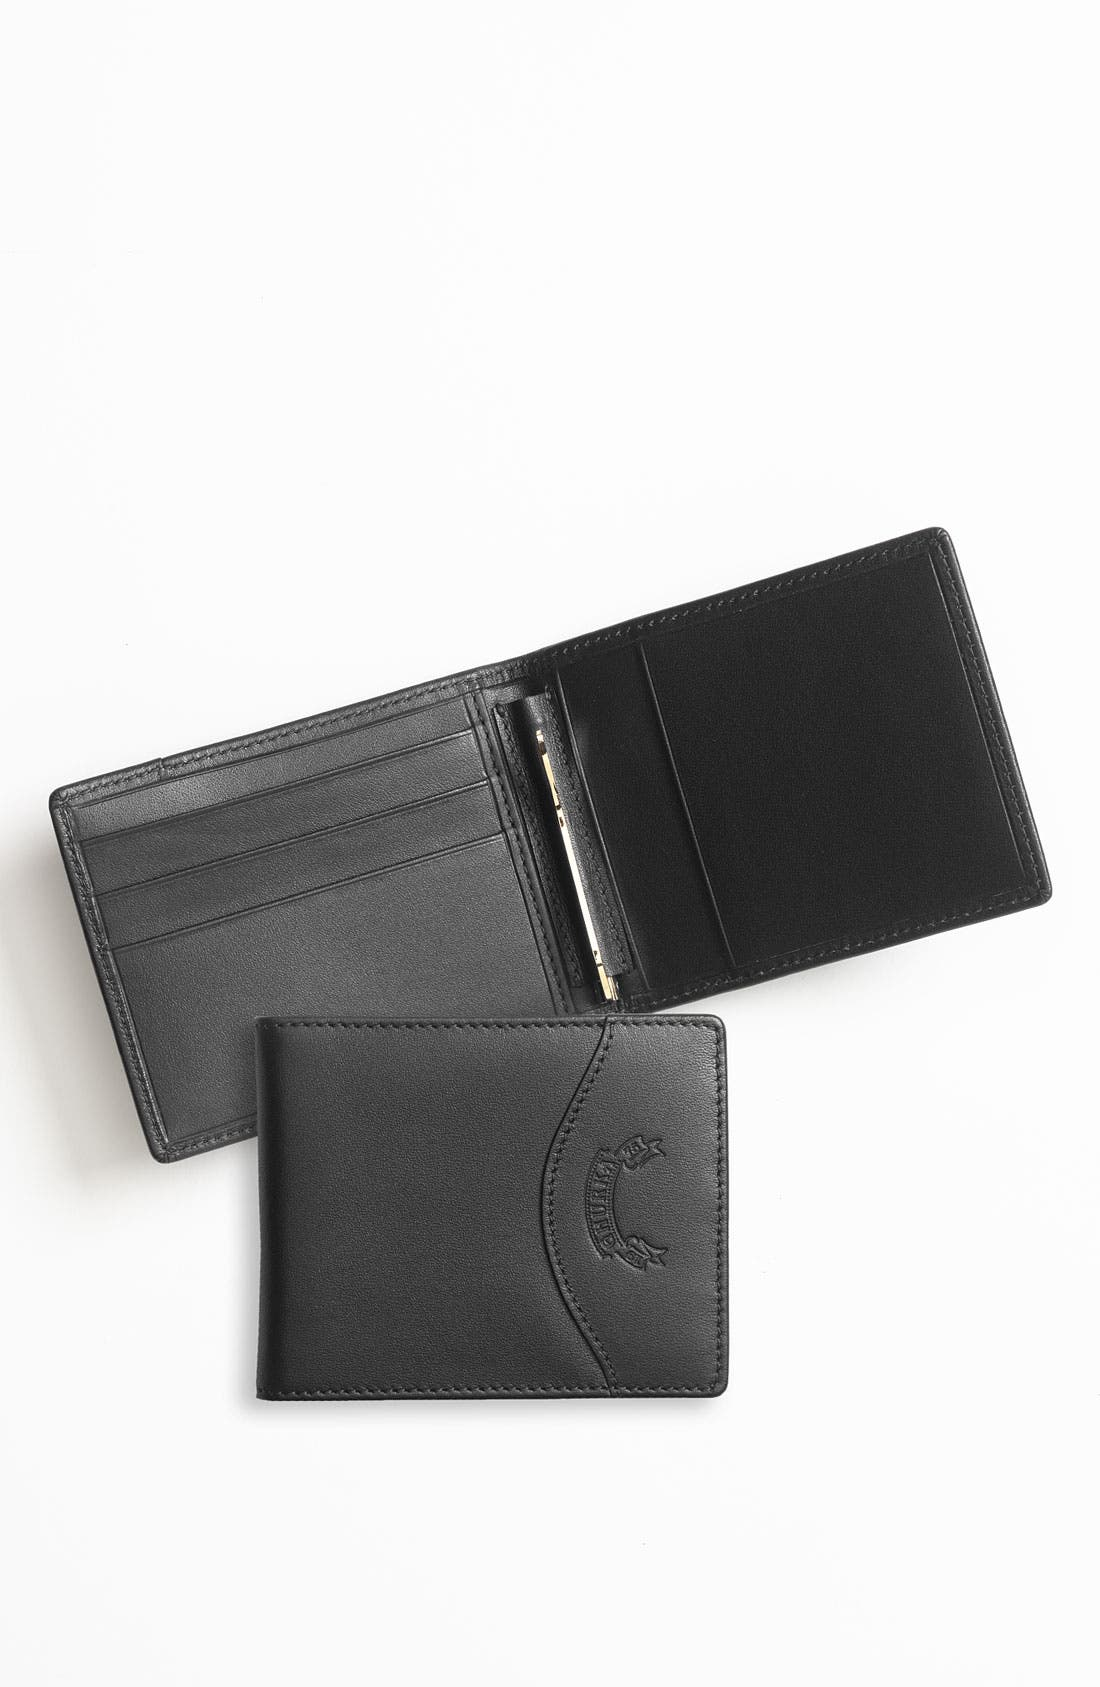 Alternate Image 1 Selected - Ghurka Leather Money Clip Wallet